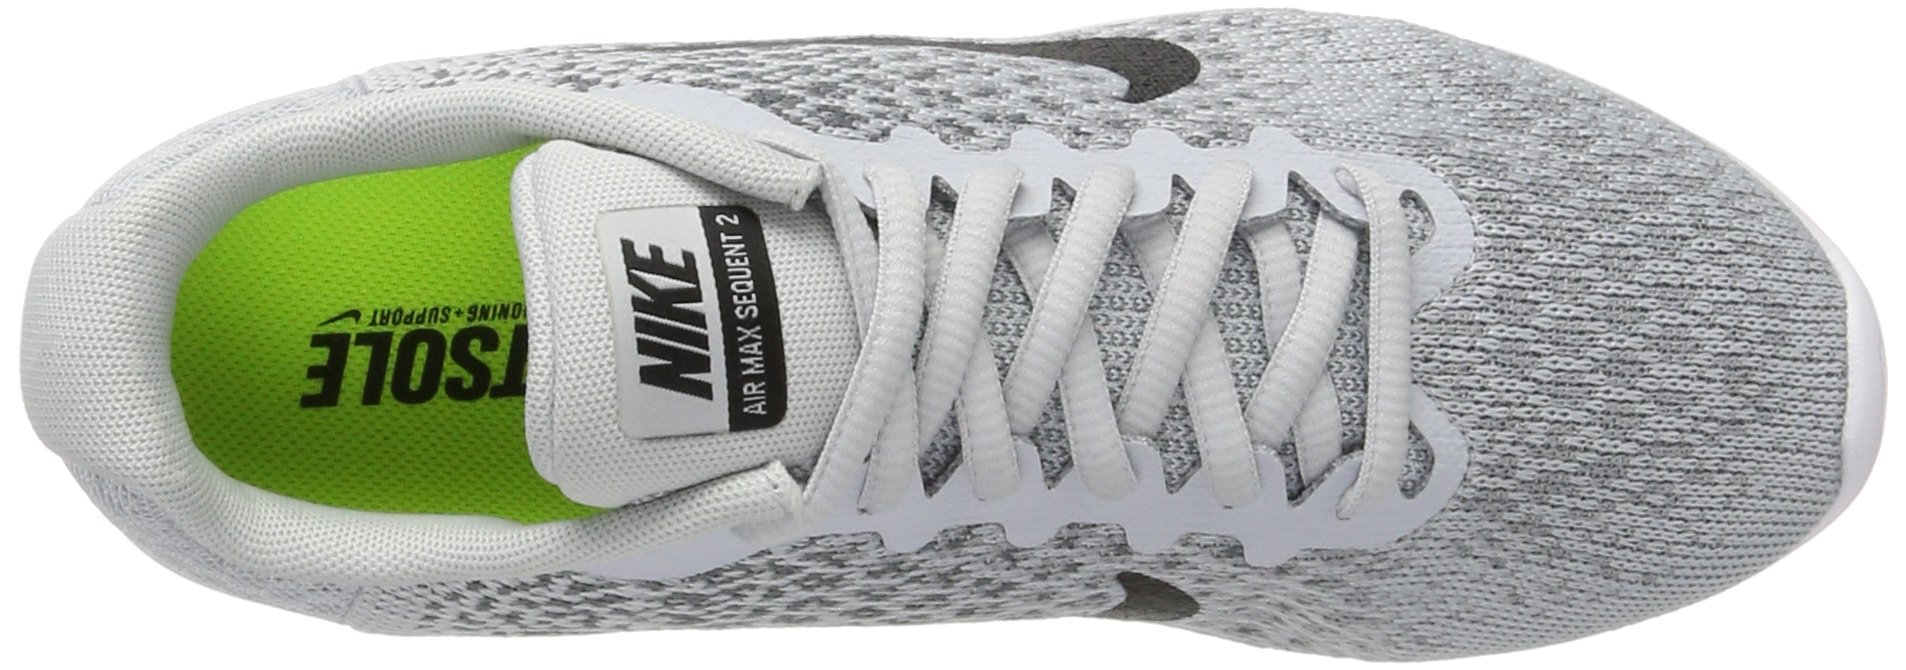 fd1c87f0a5fa79 NIKE Women s Air Max Sequent 2 Running Shoe Pure Platinum Black Cool Grey Wolf  Grey Size 9 - 852465-001 001   Road Running   Clothing